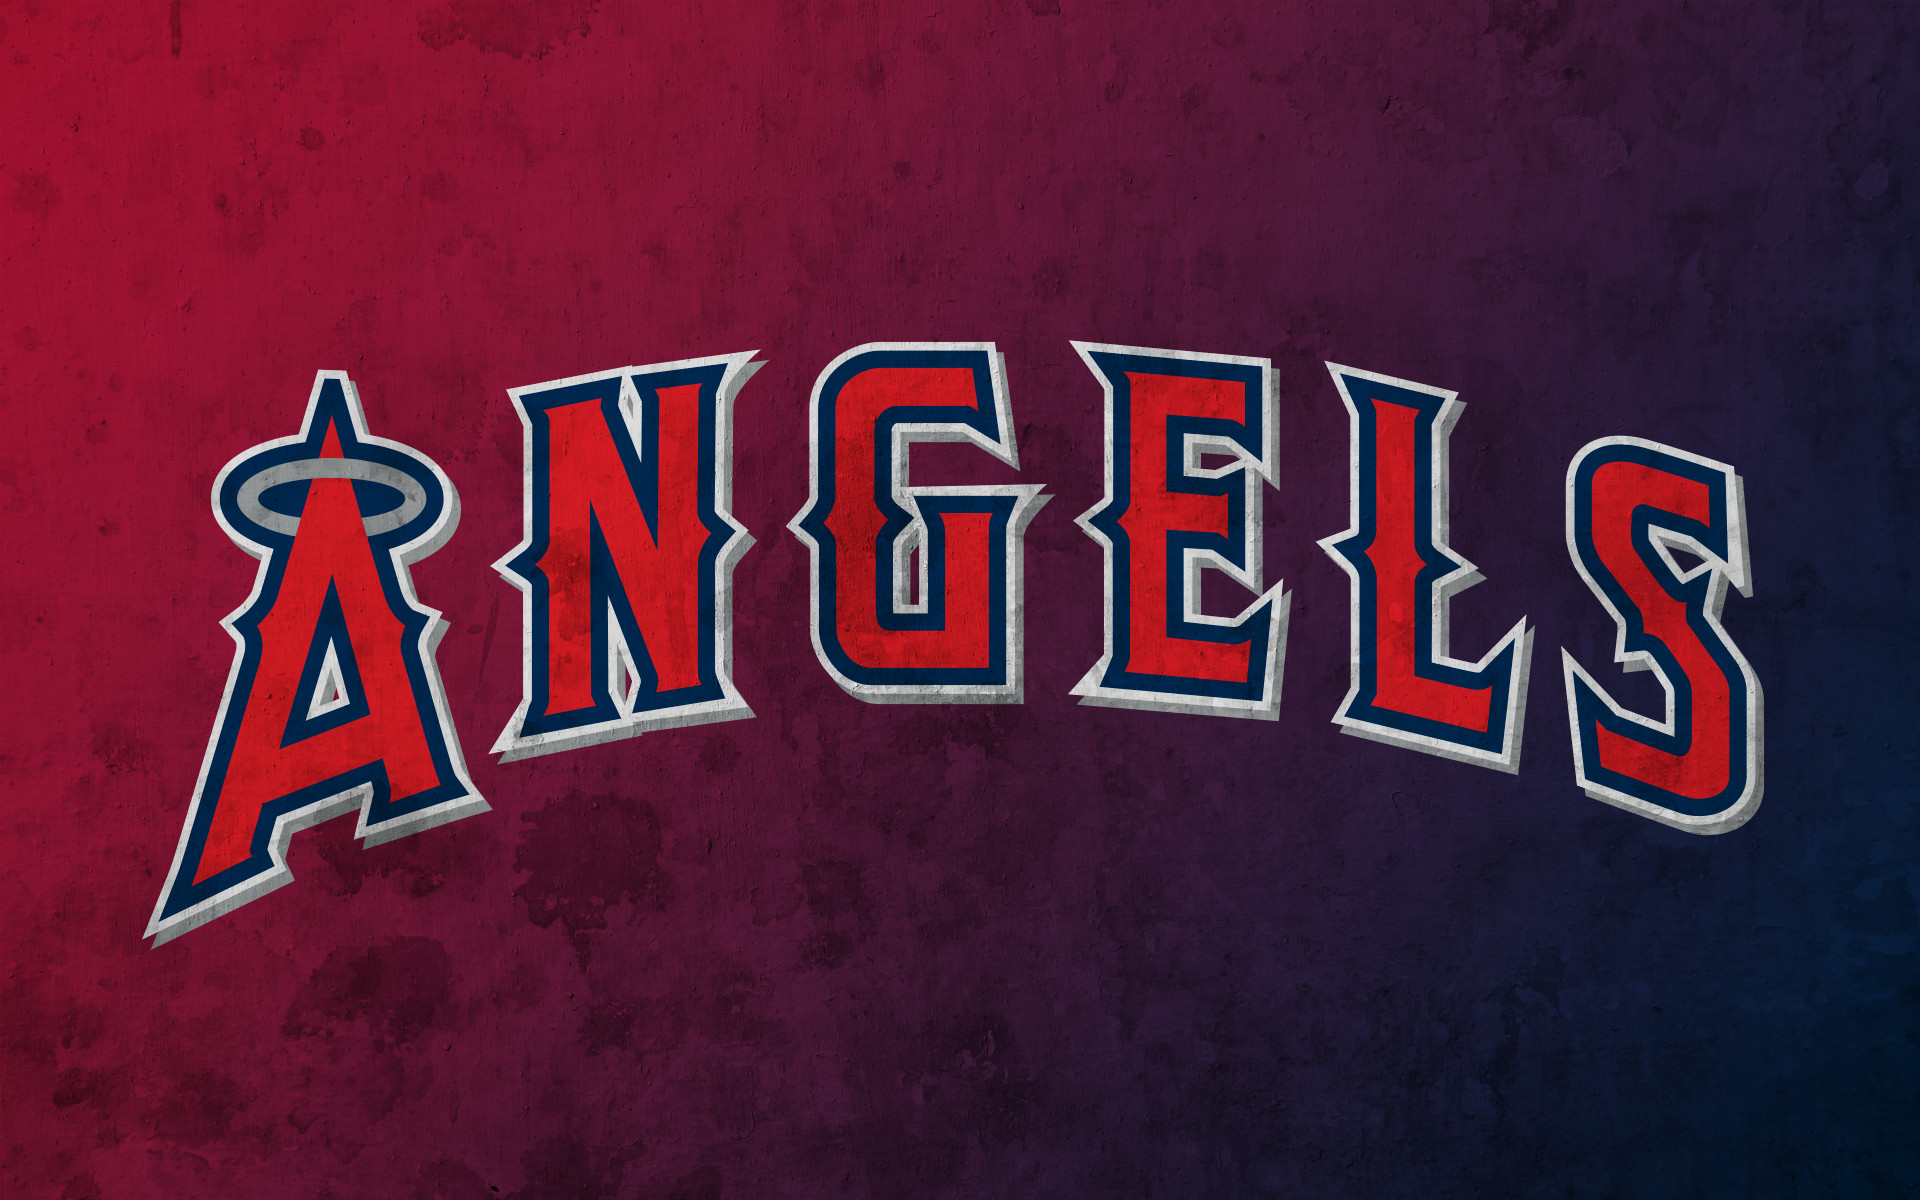 … Angels spelled out …